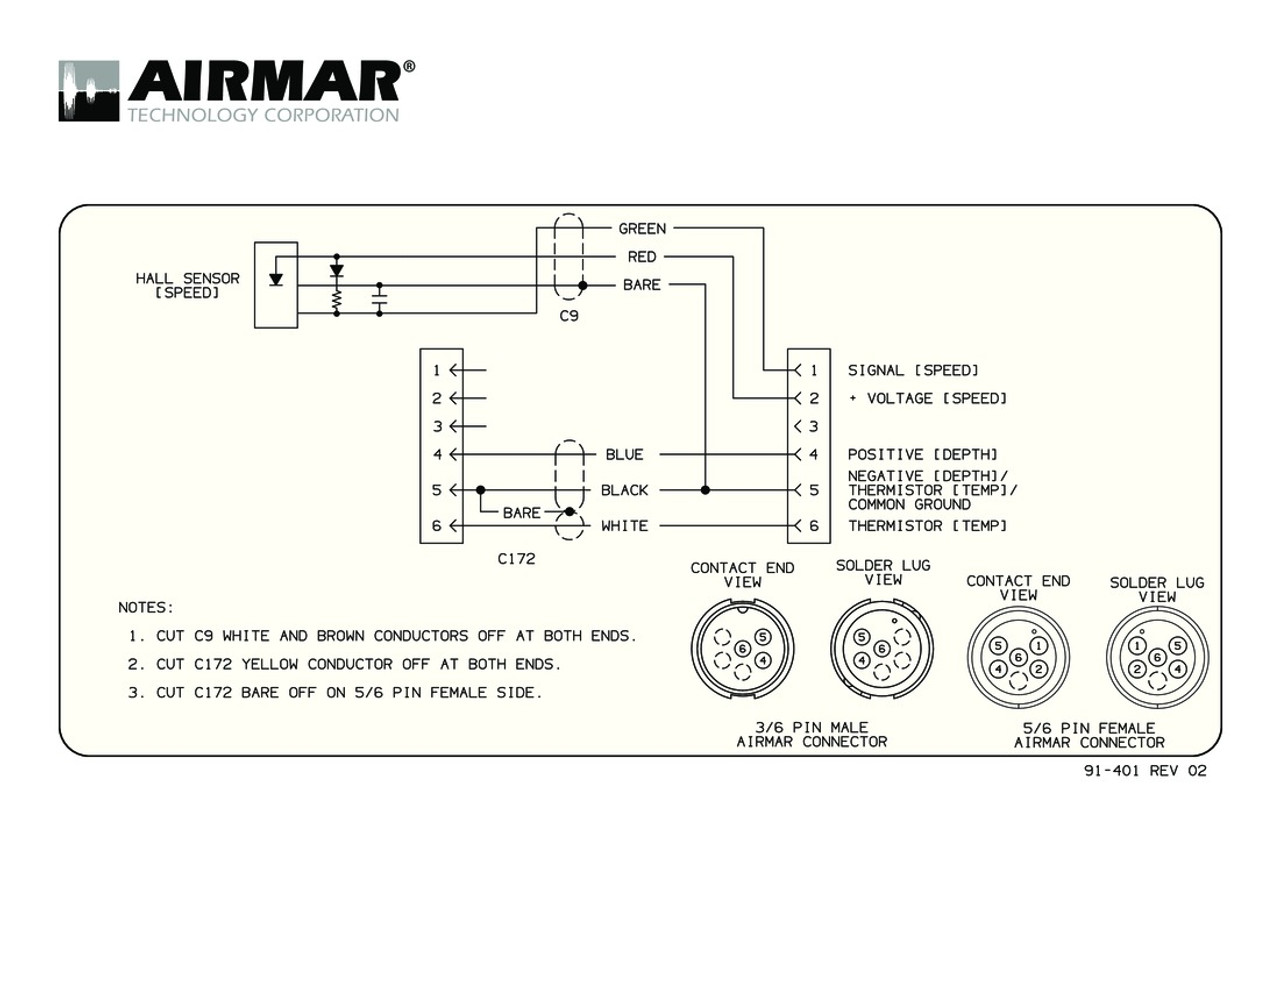 [ANLQ_8698]  Airmar Wiring Diagram Garmin 6 pin (S) | Blue Bottle Marine | Viper Vss Wiring Diagram |  | Blue Bottle Marine